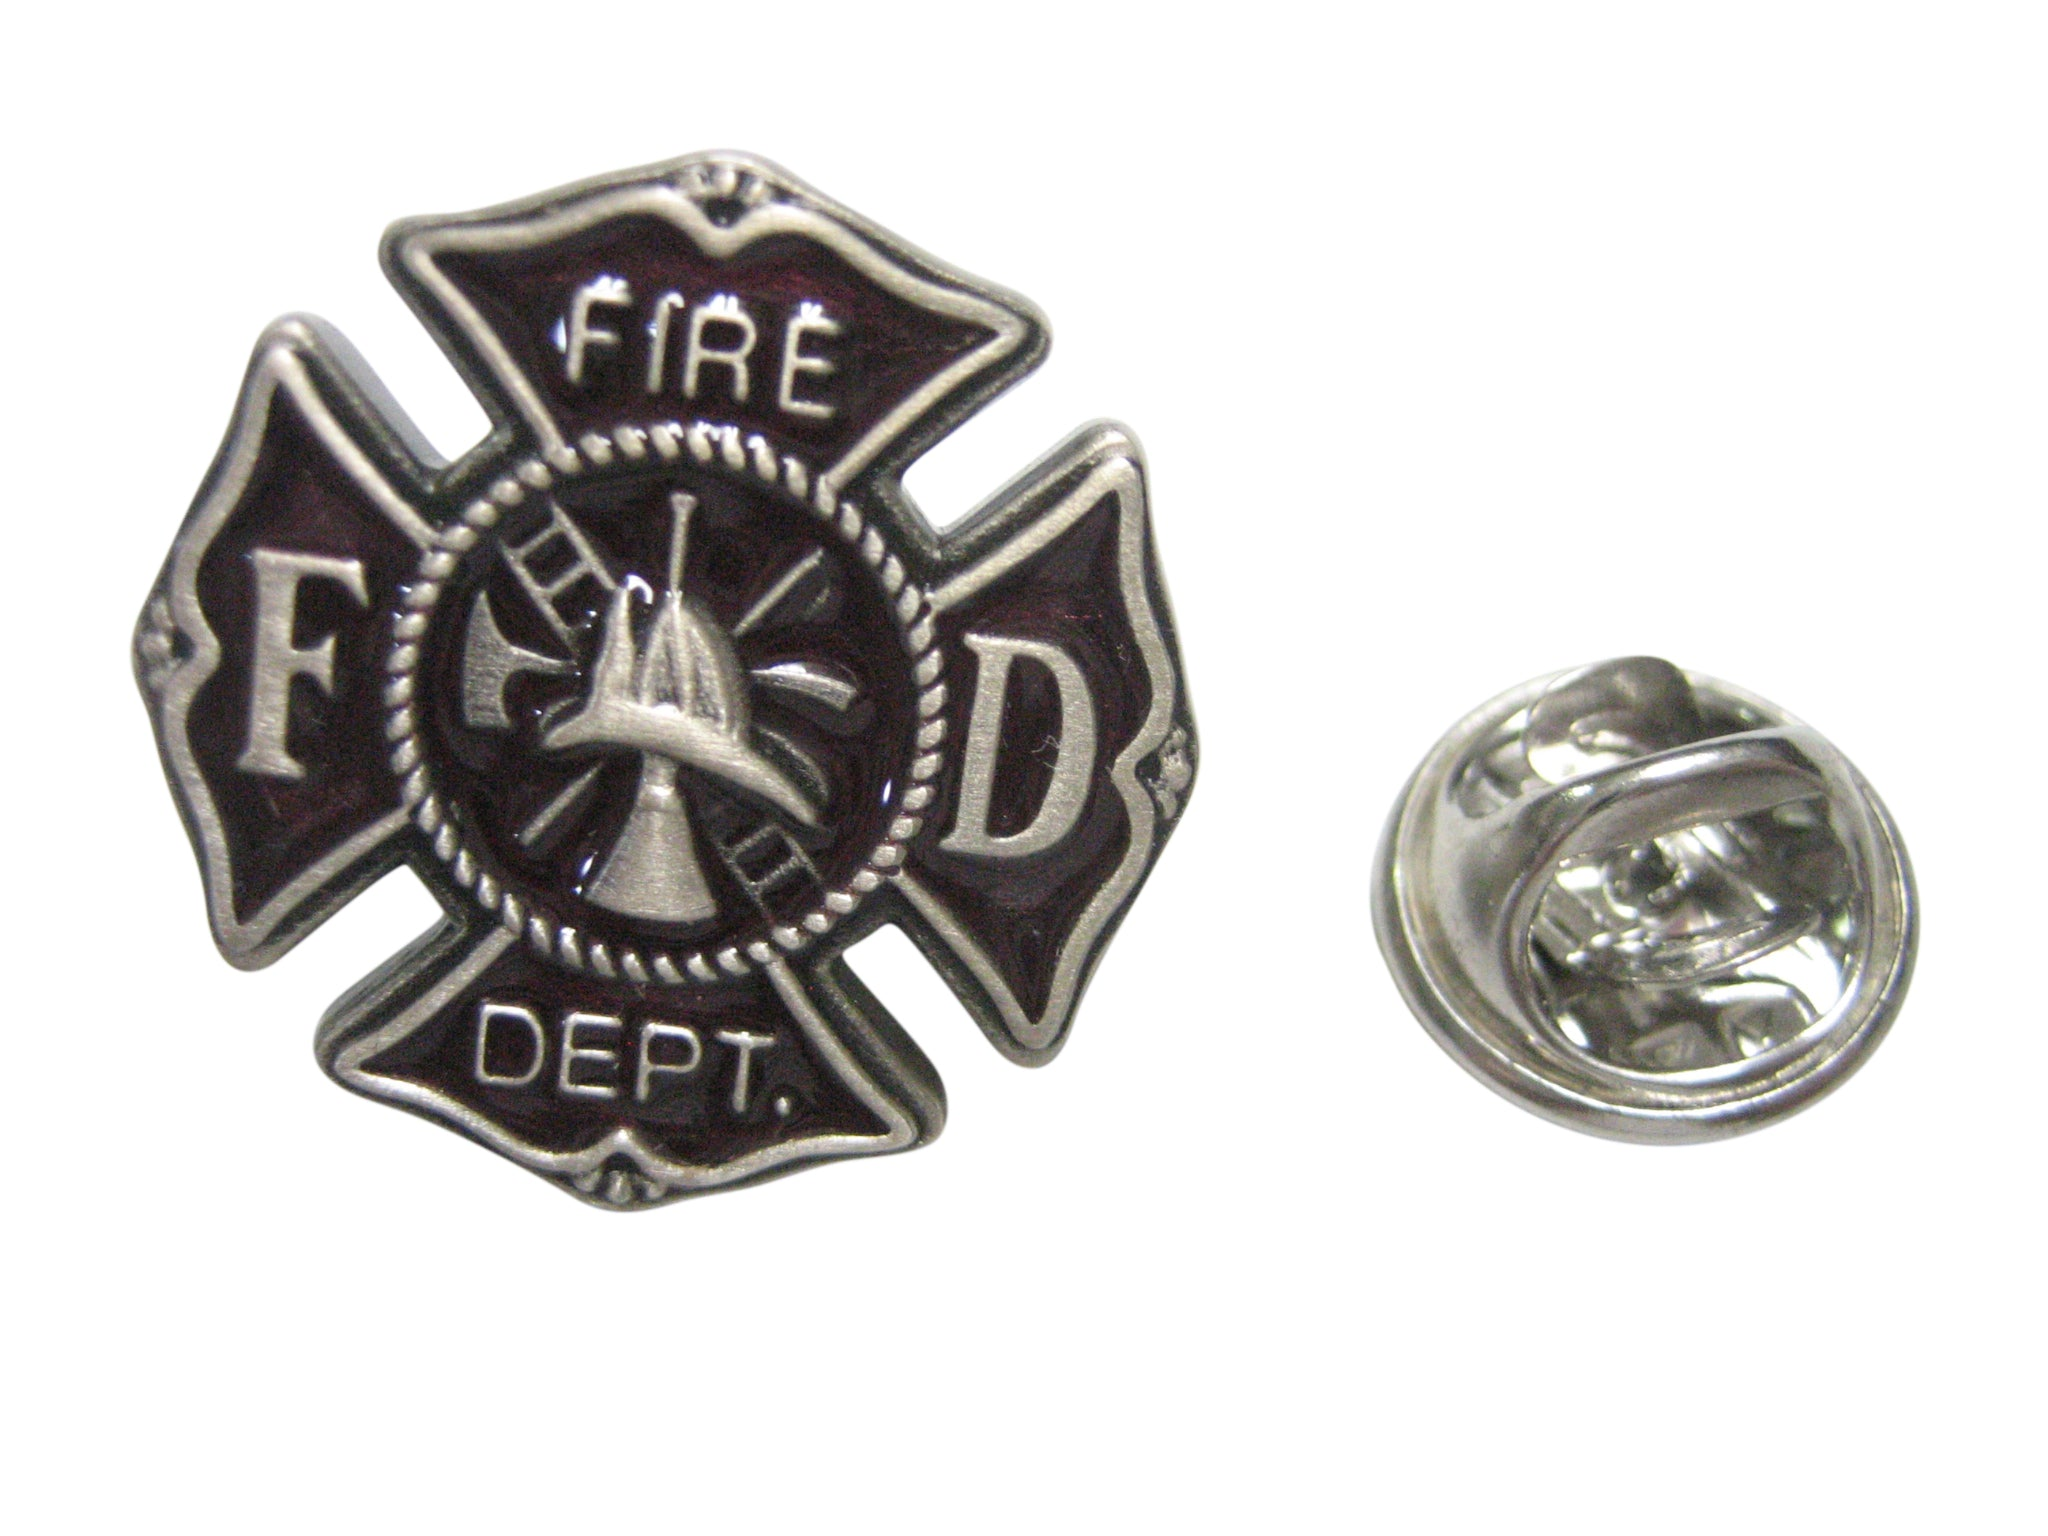 Fire Fighter Emblem Lapel Pin